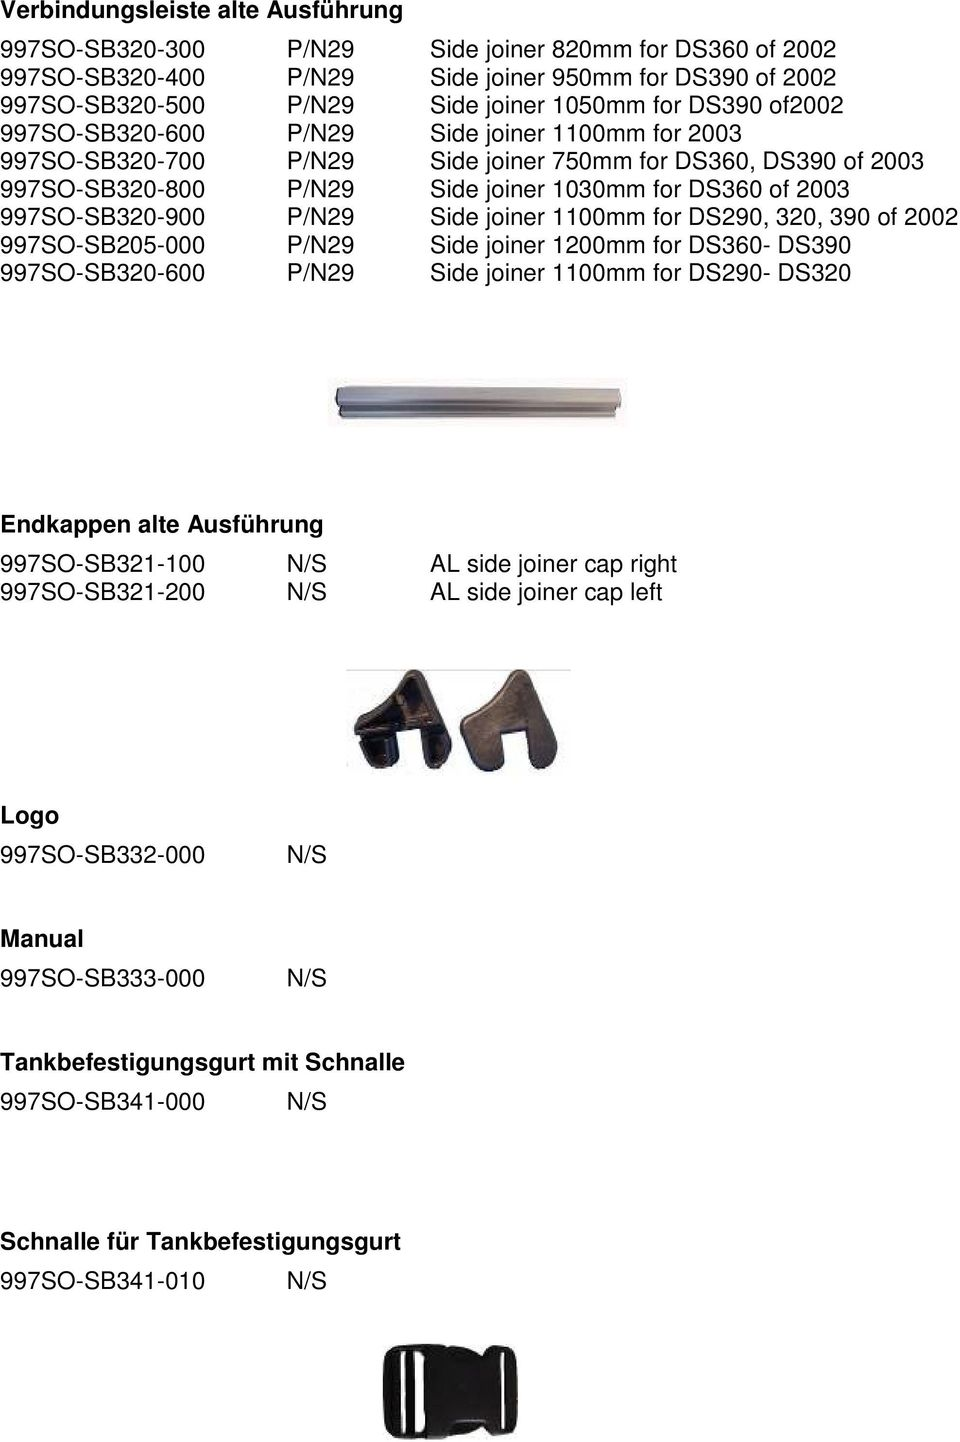 997SO-SB320-900 P/N29 Side joiner 1100mm for DS290, 320, 390 of 2002 997SO-SB205-000 P/N29 Side joiner 1200mm for DS360- DS390 997SO-SB320-600 P/N29 Side joiner 1100mm for DS290- DS320 Endkappen alte